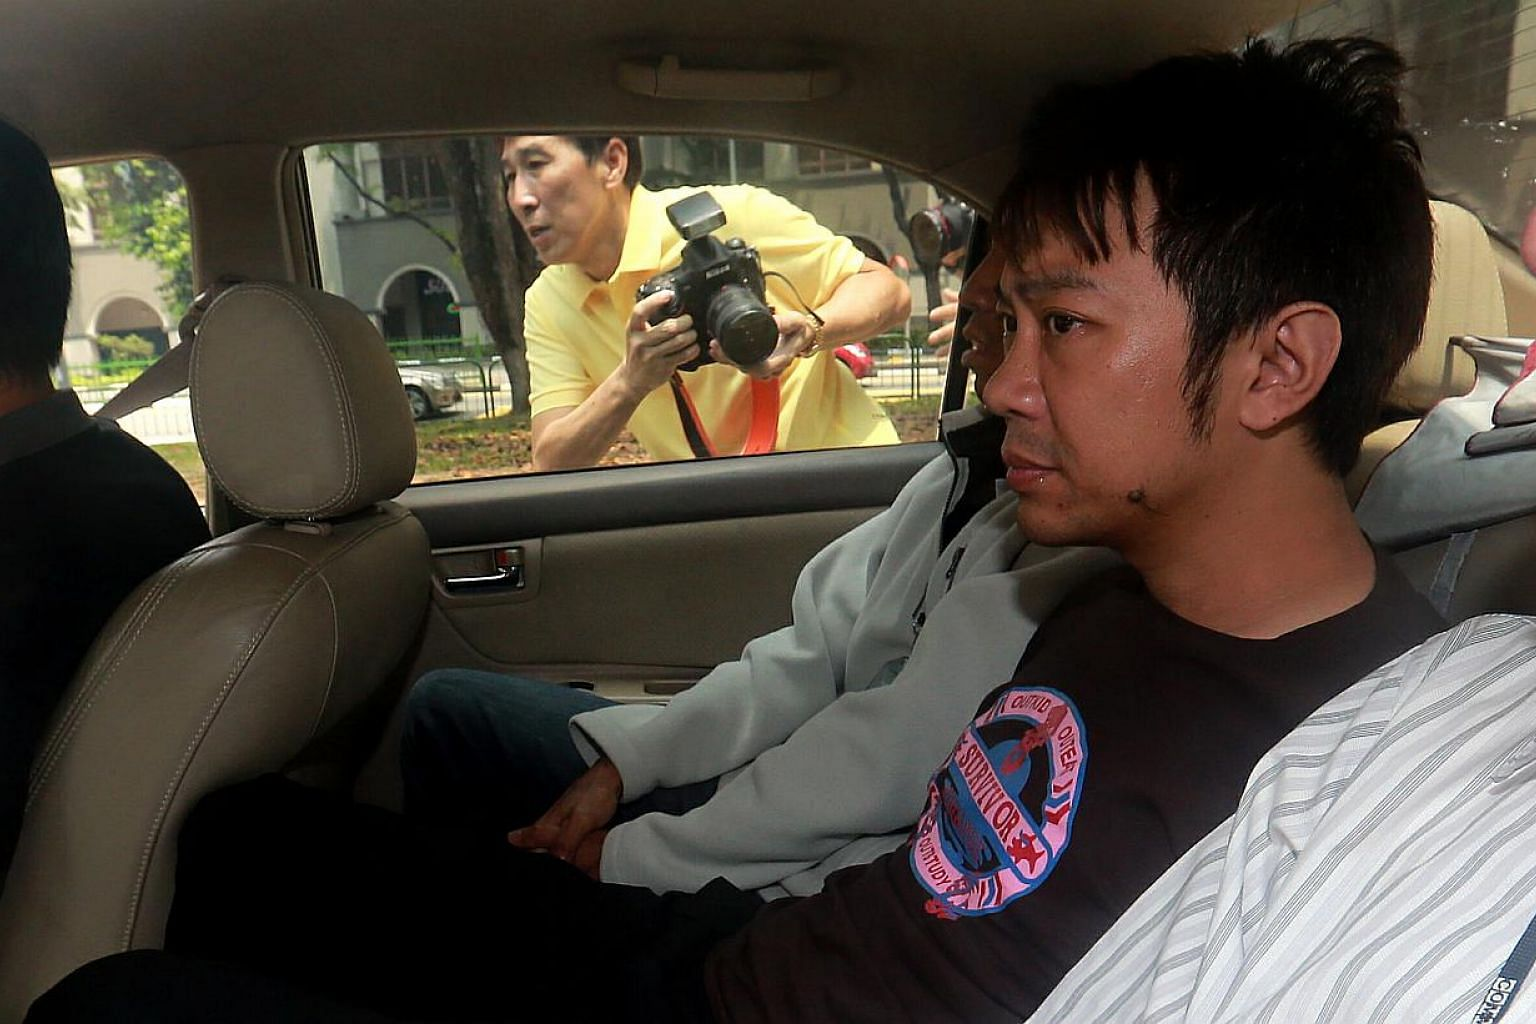 Former China tour guide Yang Yin has been remanded while the High Court deliberates over whether to reverse an earlier decision to grant him bail. -- ST PHOTO: WONG KWAI CHOW